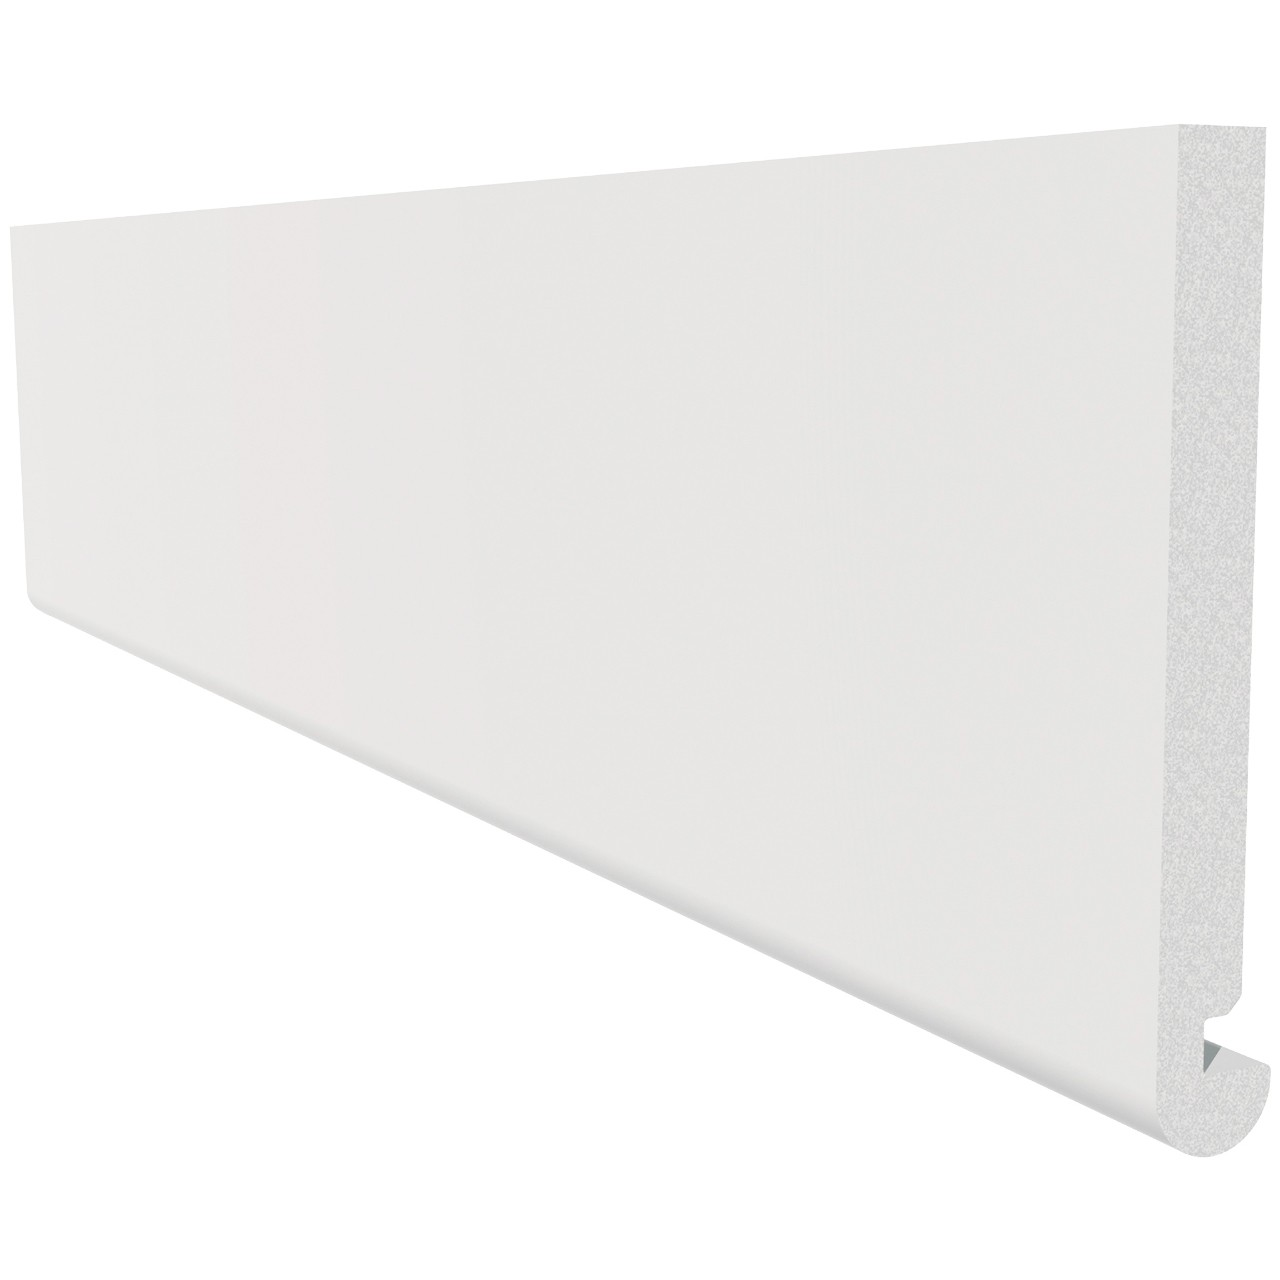 Freefoam Round Nose 18mm Fascia Board - White, 150mm, 5 metre